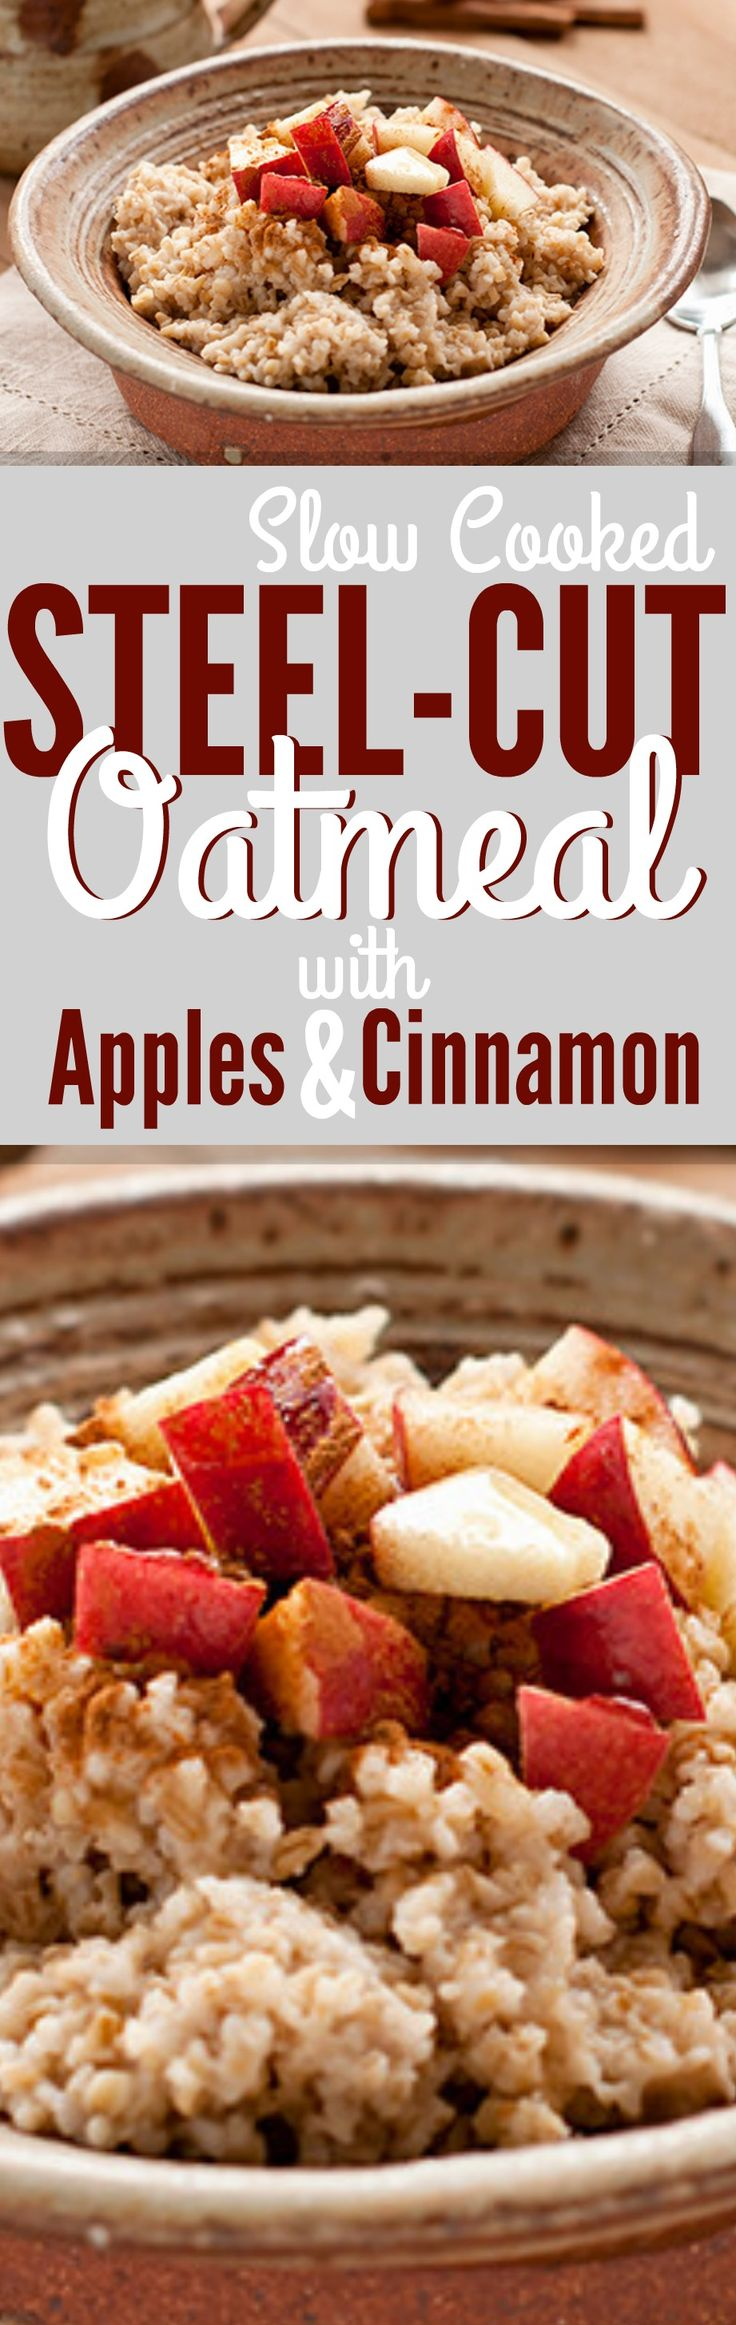 Slow Cooked Steel-Cut Oatmeal with Apples and Cinnamon - Crockpot Steel Cut Oats #steelcutoats #steelcutoatmeal #slowcookeroatmeal #crockpotoatmeal #oatmeal #applesandcinnamonsteelcutoats #applesandcinnamonoatmeal